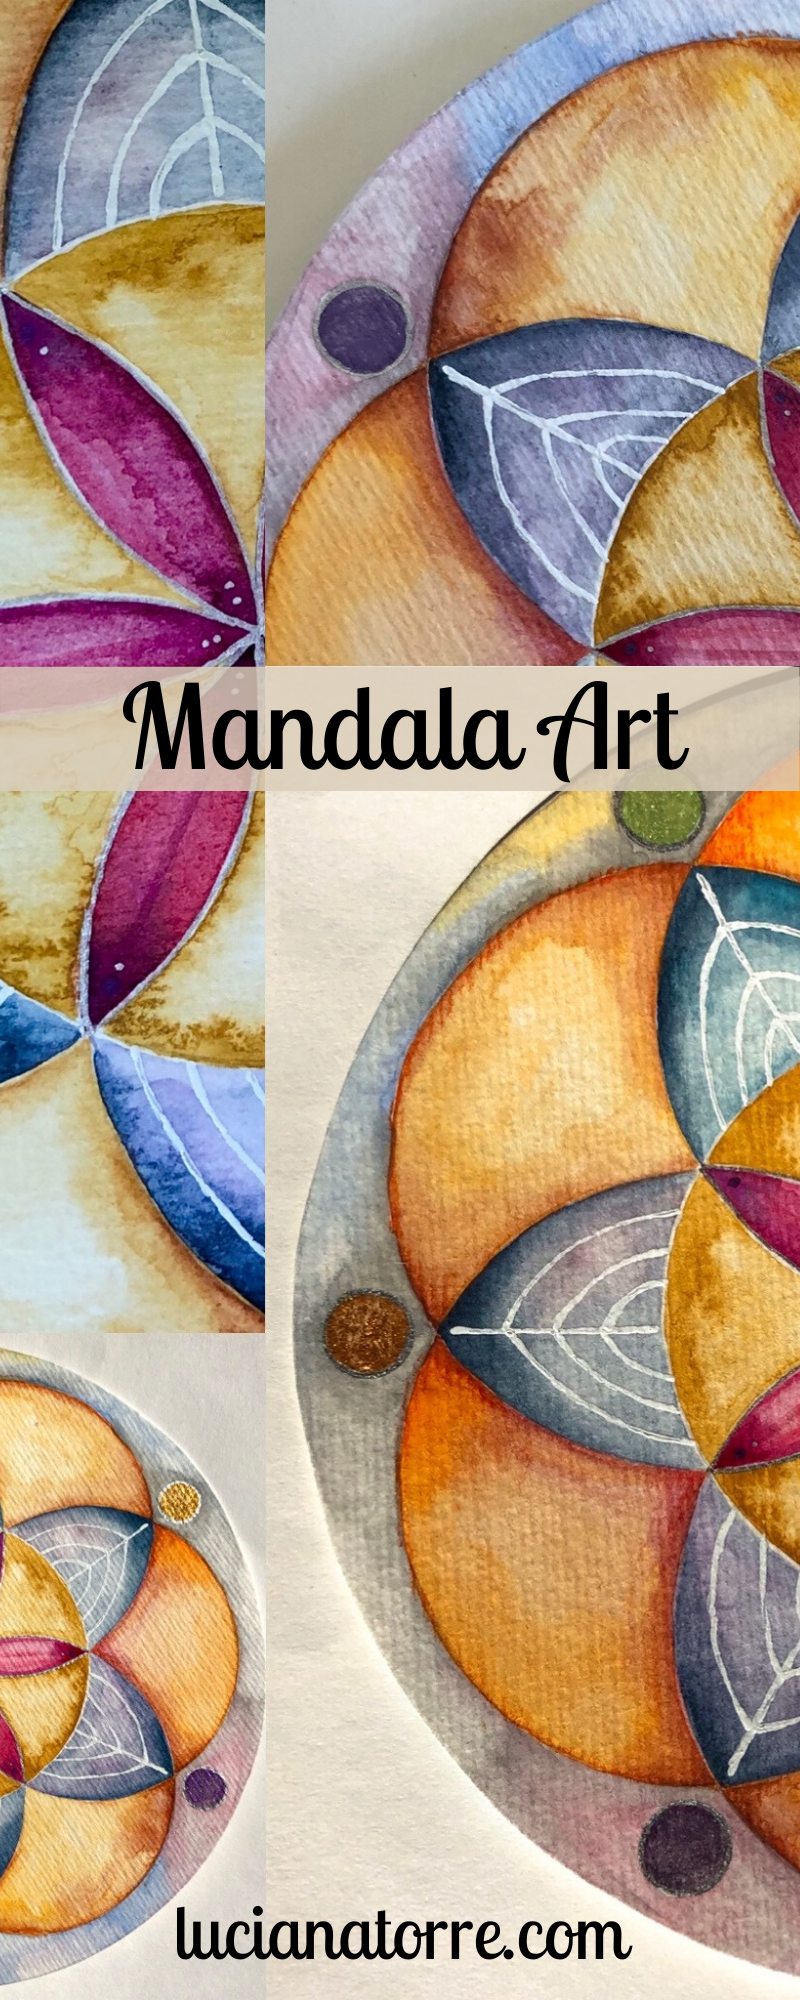 © Luciana Torre ✤ personal MANDALA ART painting, drawing, tattoo inspiration, watercolour illustration. Customised yourmandala artwork ✤ For PROJECTS and COMMISIONS: lucianatorreart@gmail.com ✤ www.lucianatorre.com #customgifts #mandalapersonal #mandalacreativo #handpainted-mandala #mandalatattoo #seedoflifeart #seedoflifeillustration #watercolormandala